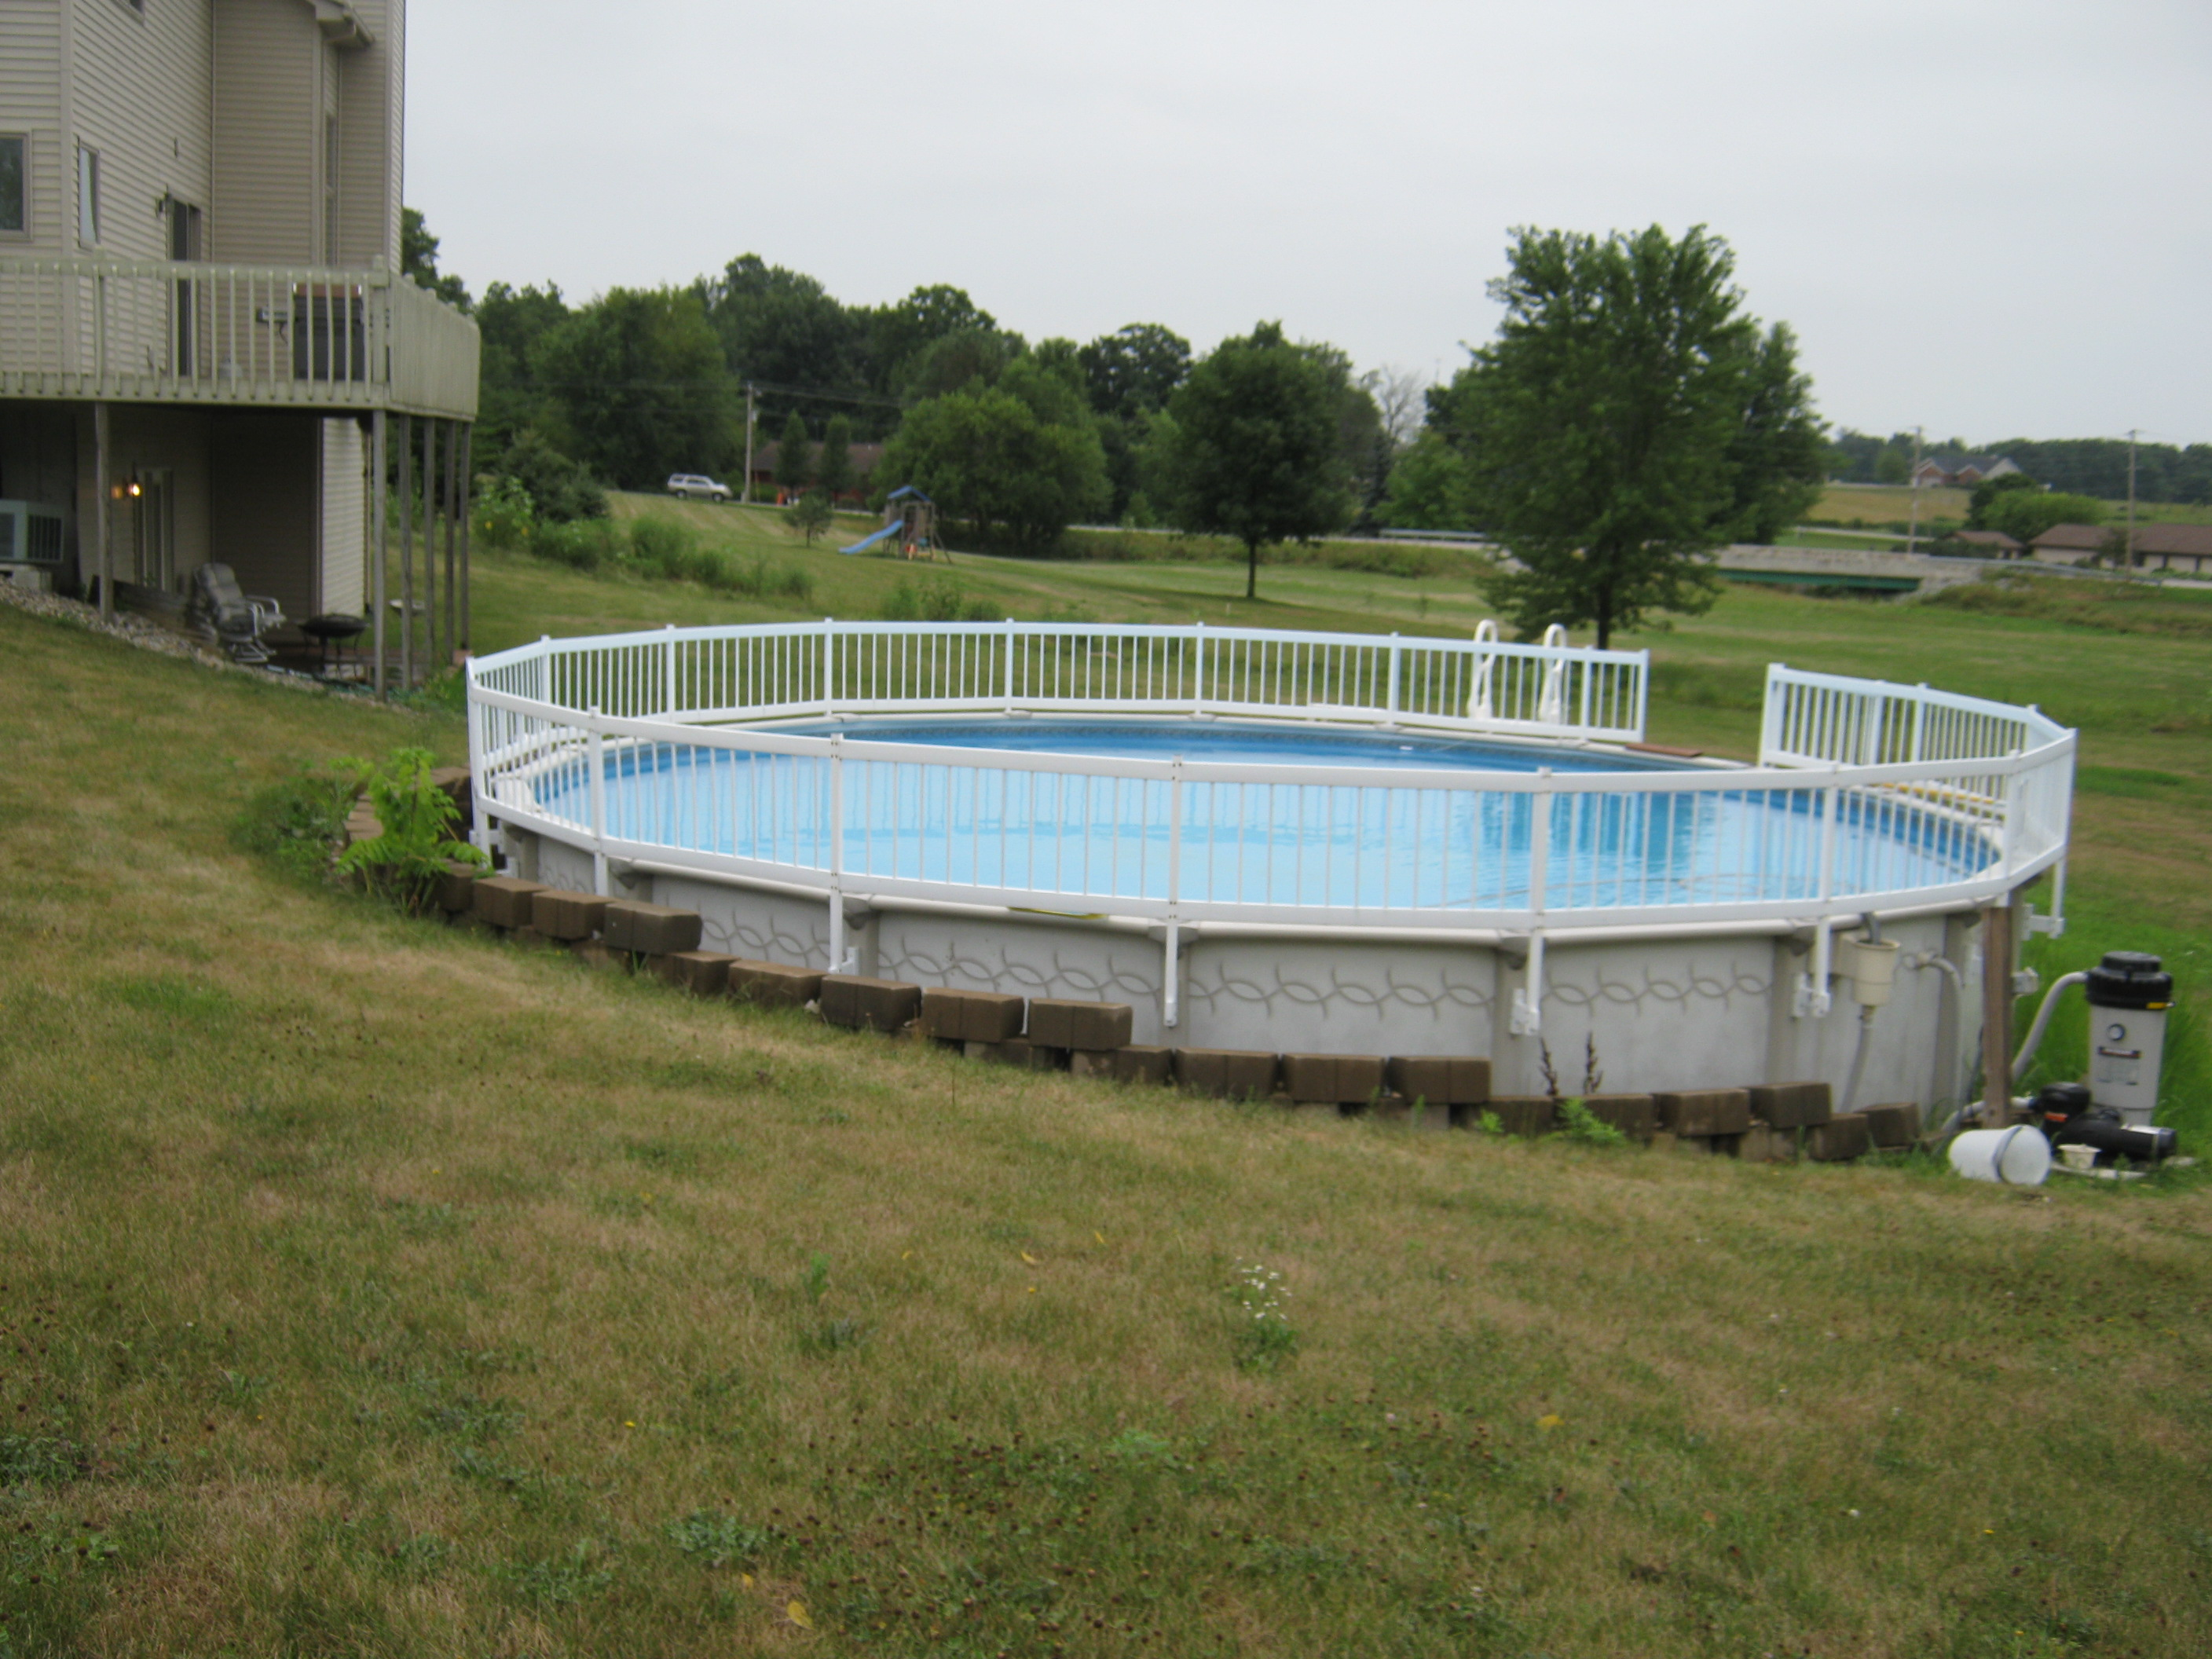 Columbia City house now connected to pool with new decks